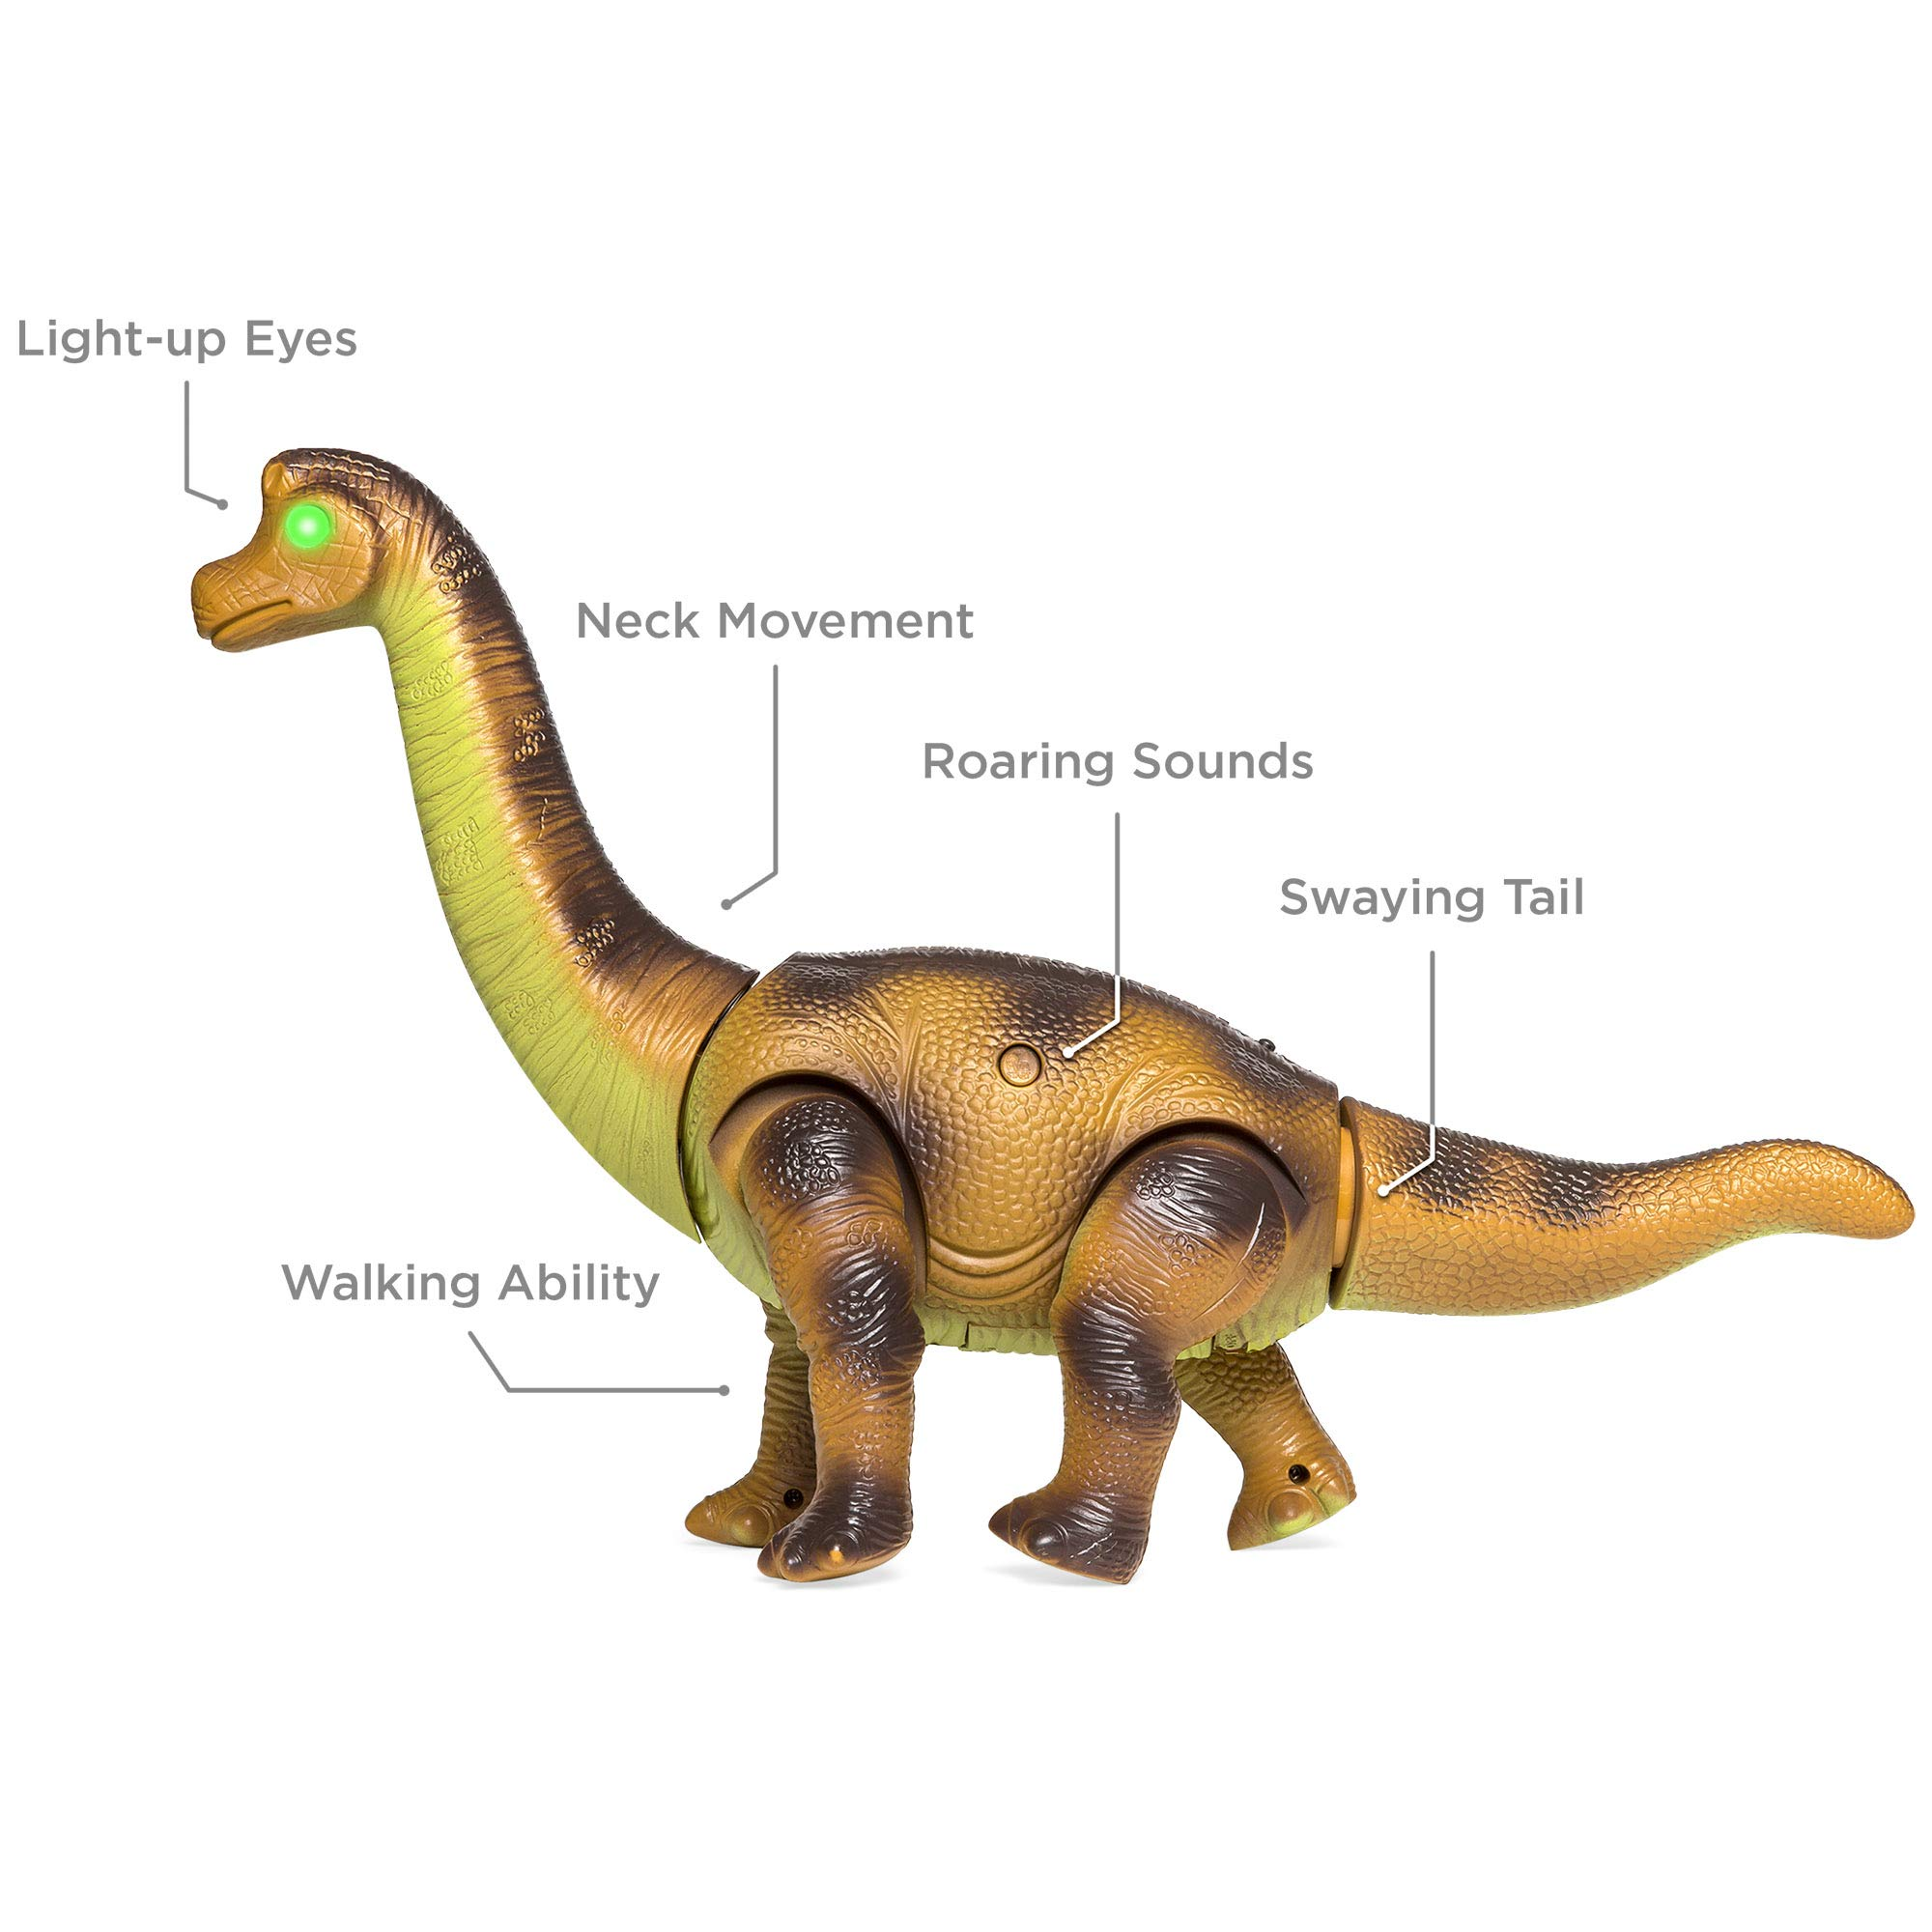 Best Choice Products 17.5in Kids RC Stomping Brachiosaurus Dinosaur Electric Animal Toy Robot w/ Light Up Eyes, Roaring Sounds, Swinging Head, Remote Control by Best Choice Products (Image #3)